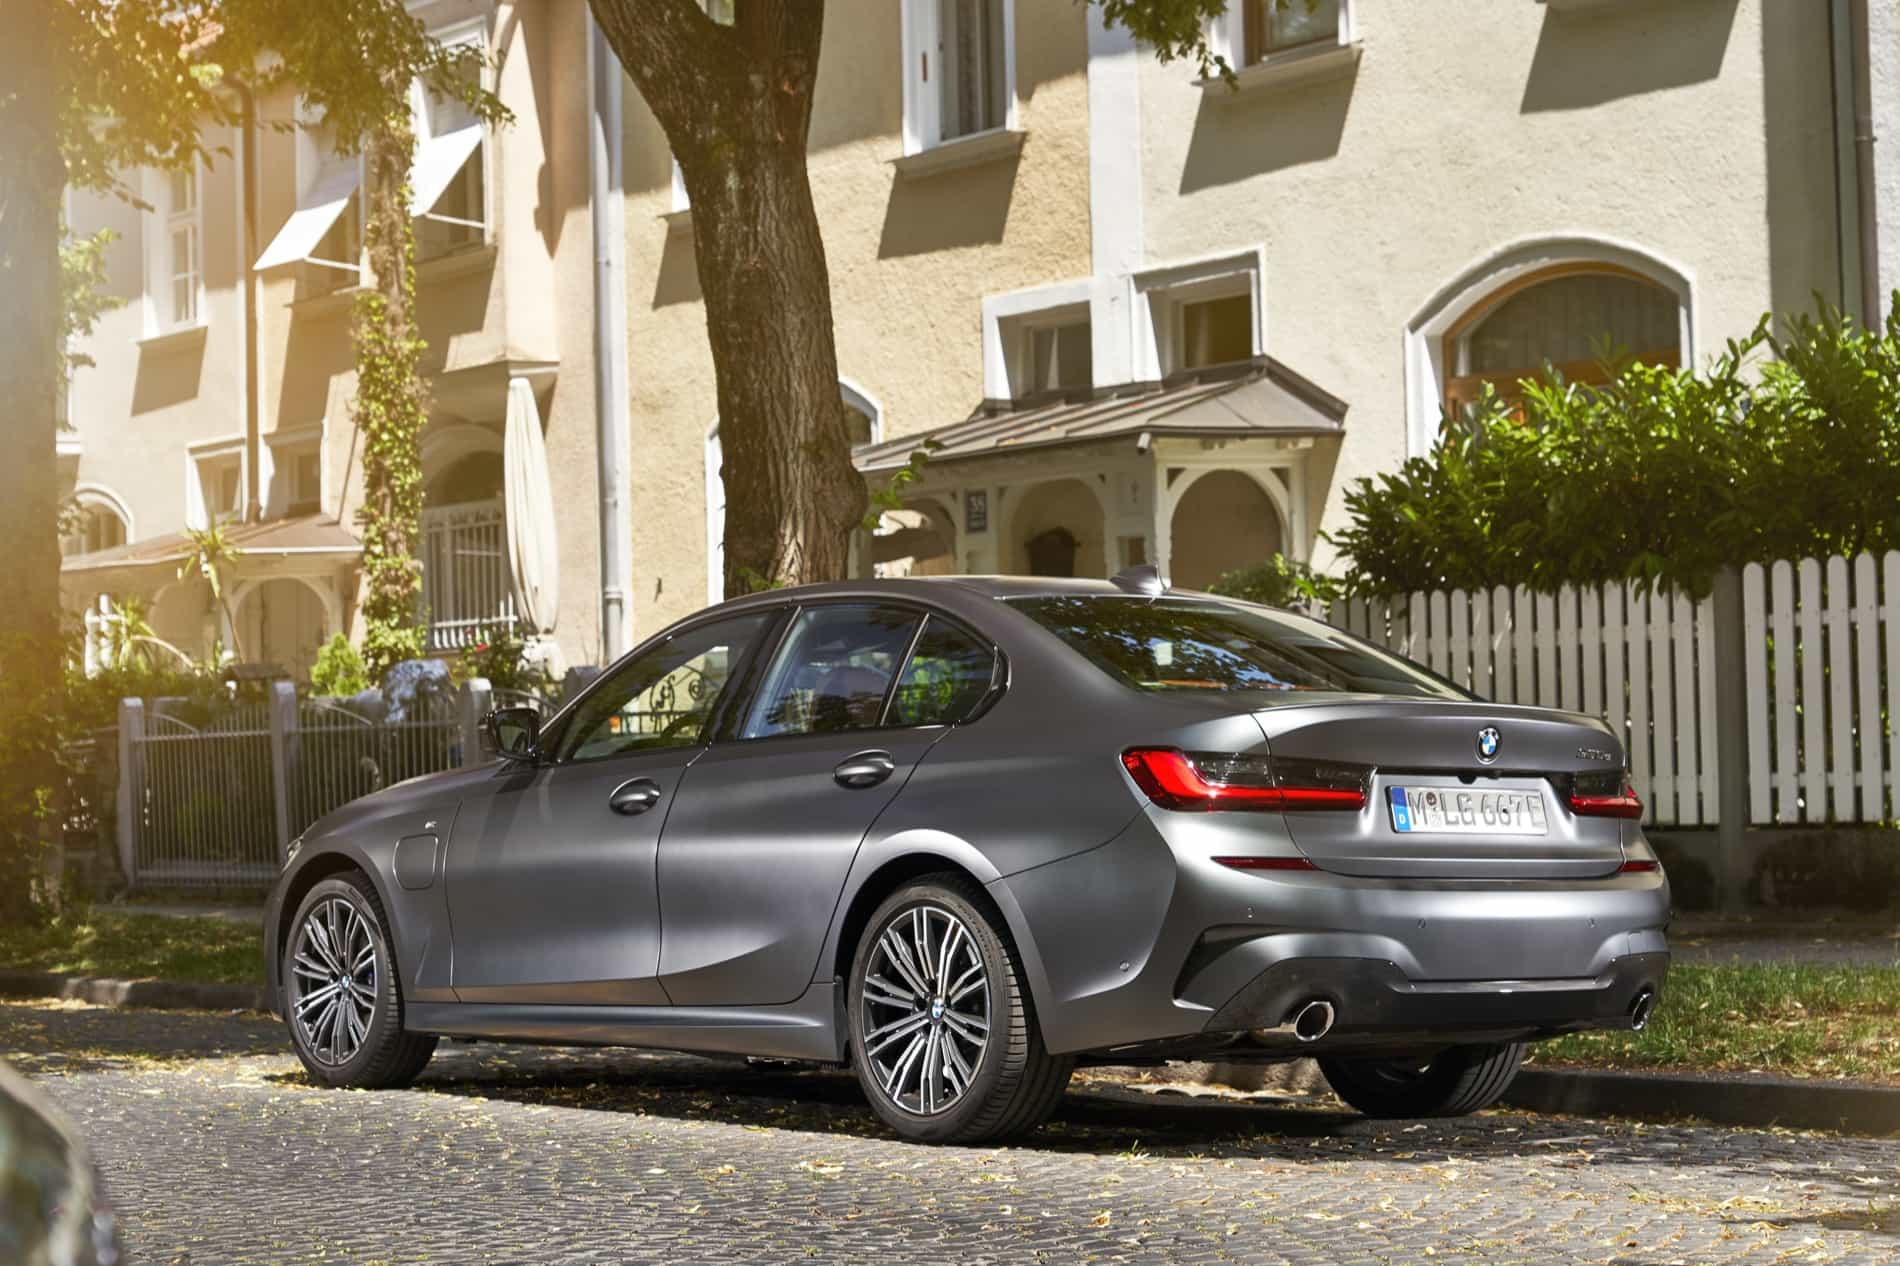 BMW_3_Series_Plug-in_Hybrid-021